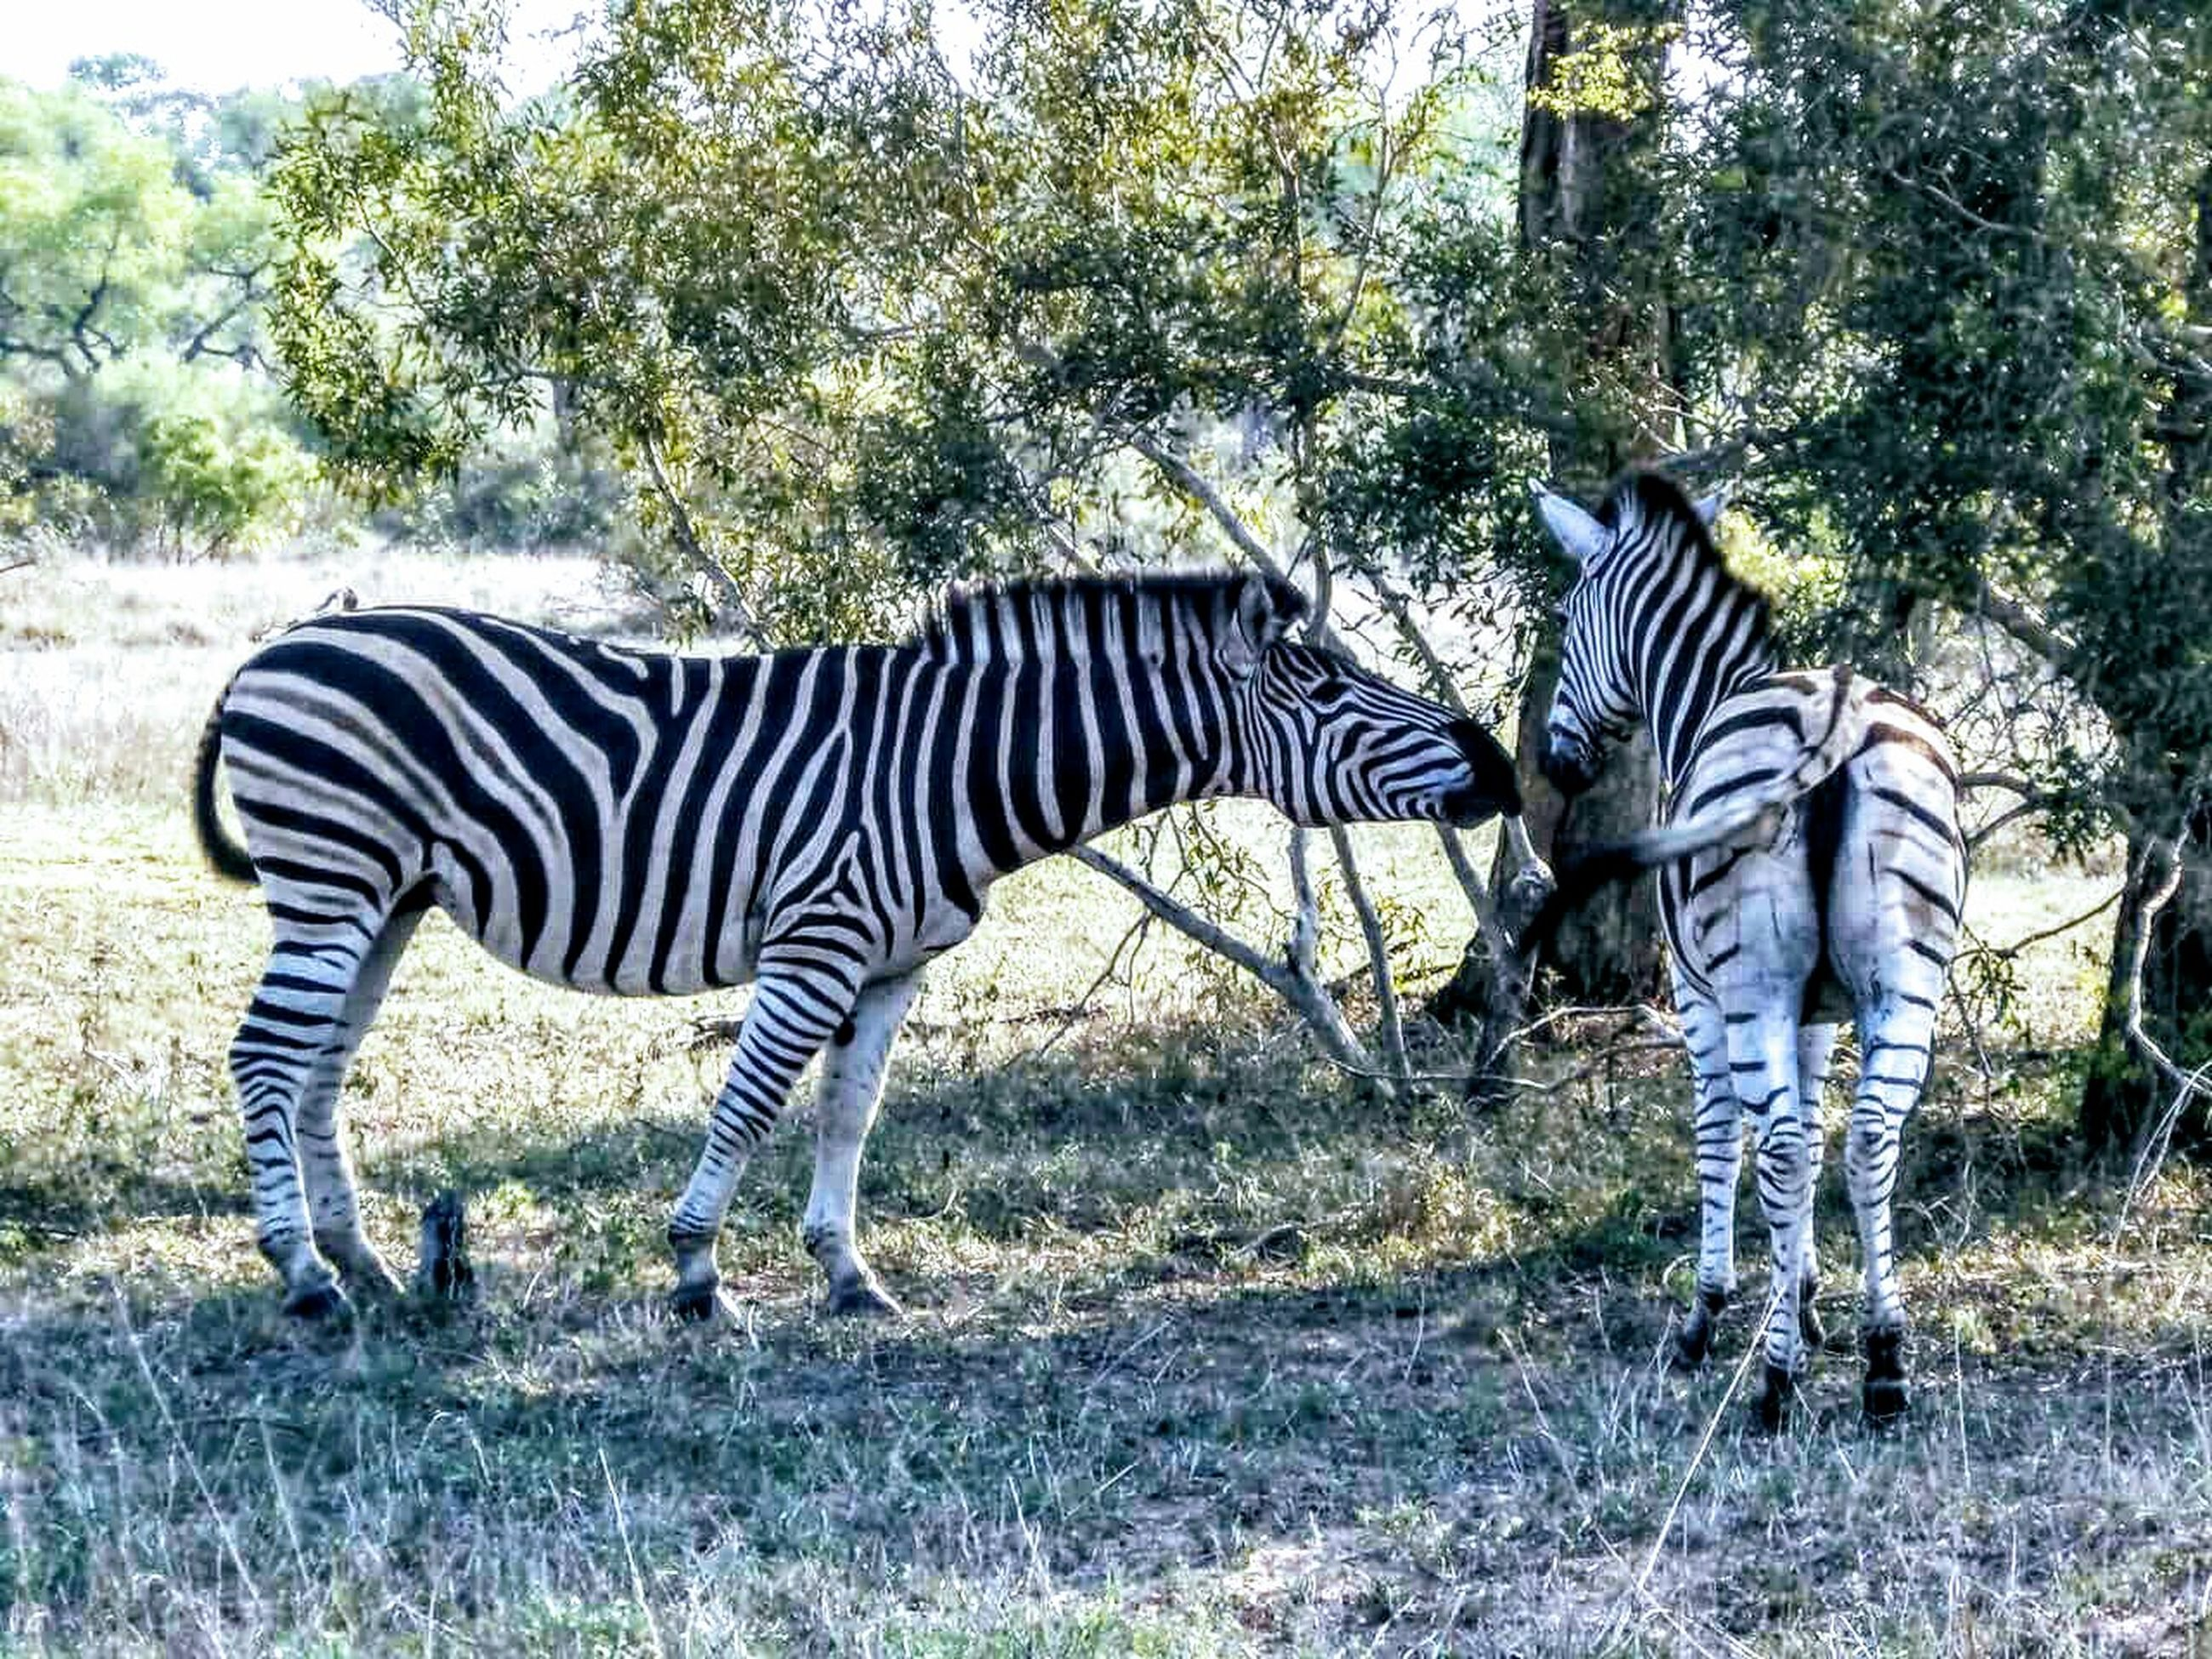 striped, zebra, animals in the wild, animal wildlife, animal themes, mammal, animal markings, tree, day, safari animals, outdoors, grass, nature, side view, standing, full length, beauty in nature, no people